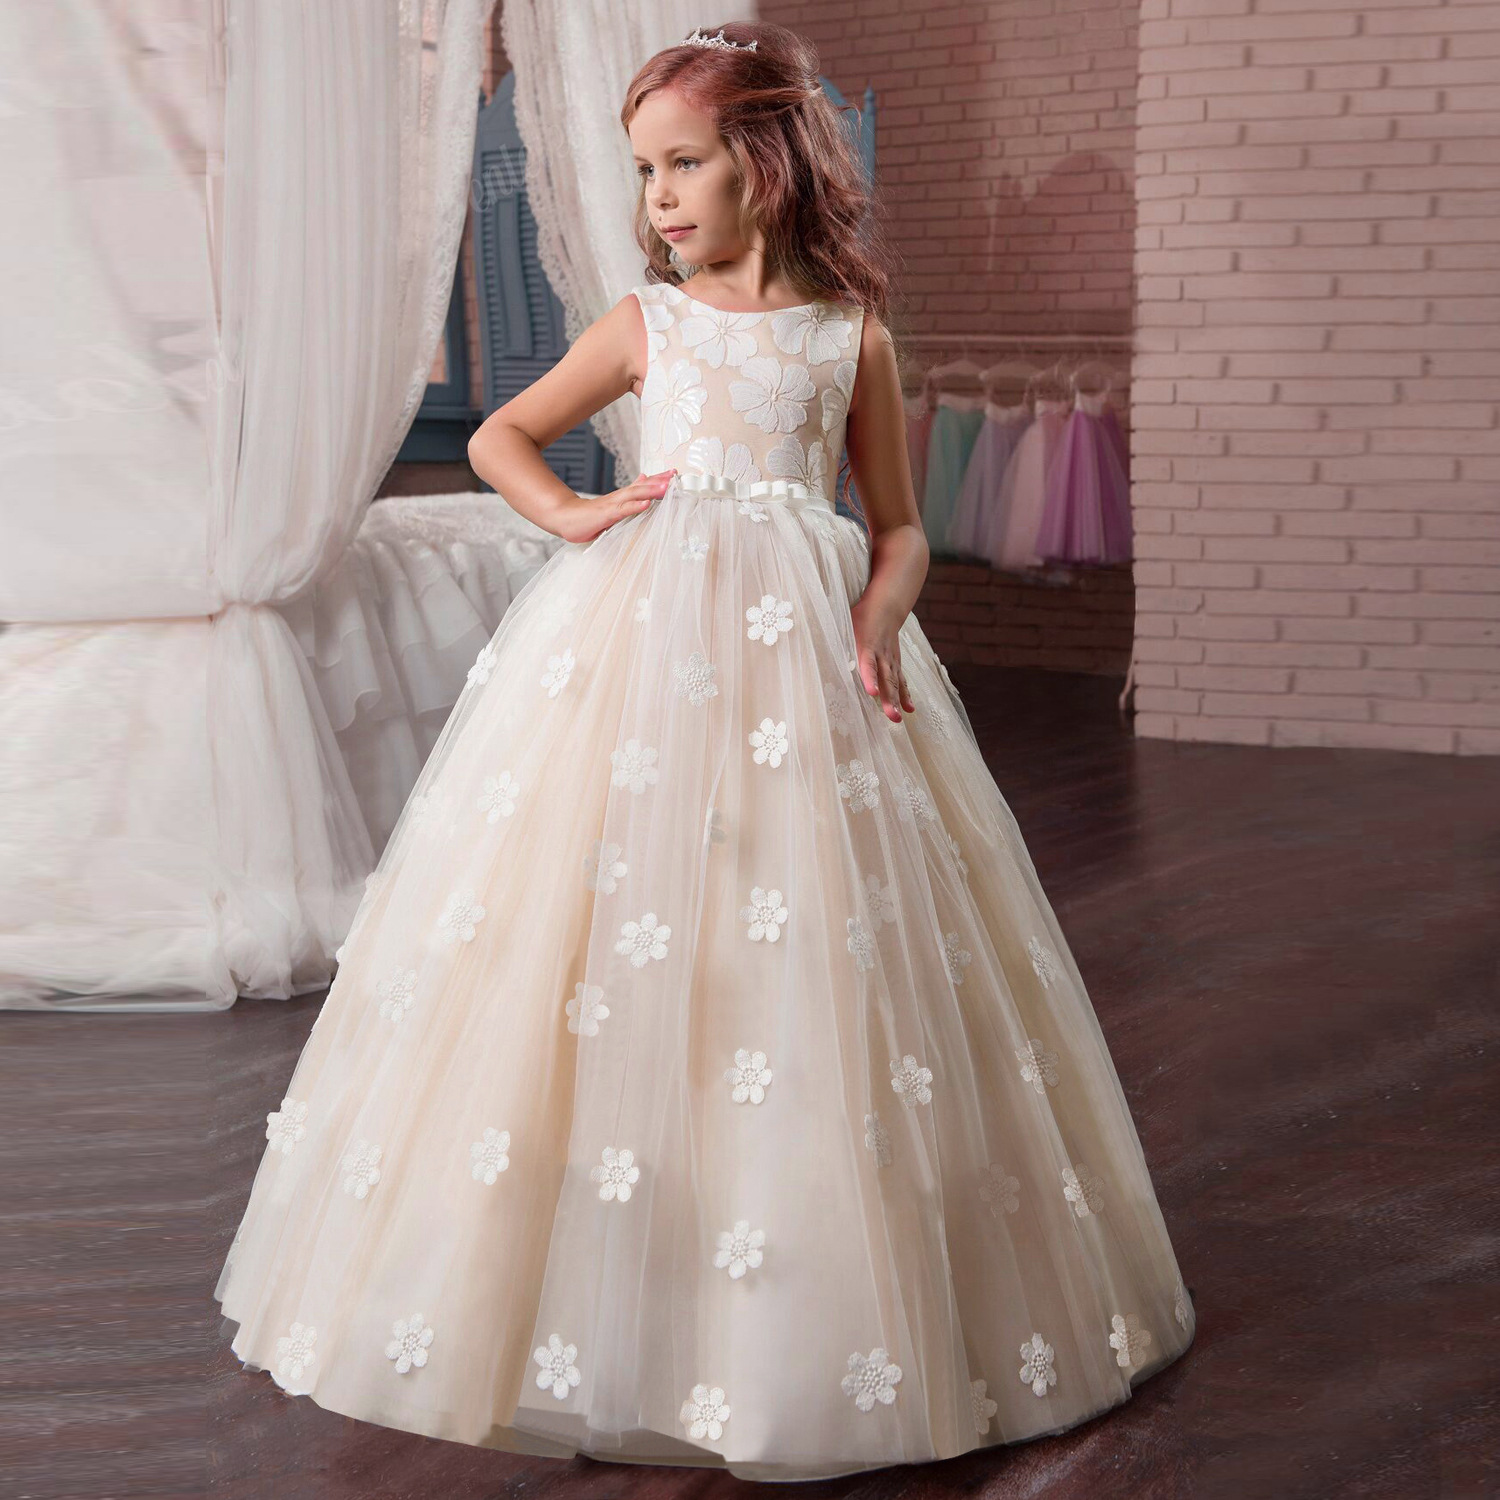 2019 New Style Girls Stage Catwalks Costume Small Host Formal Dress Flower Boys/Flower Girls Puffy Princess Dress Now